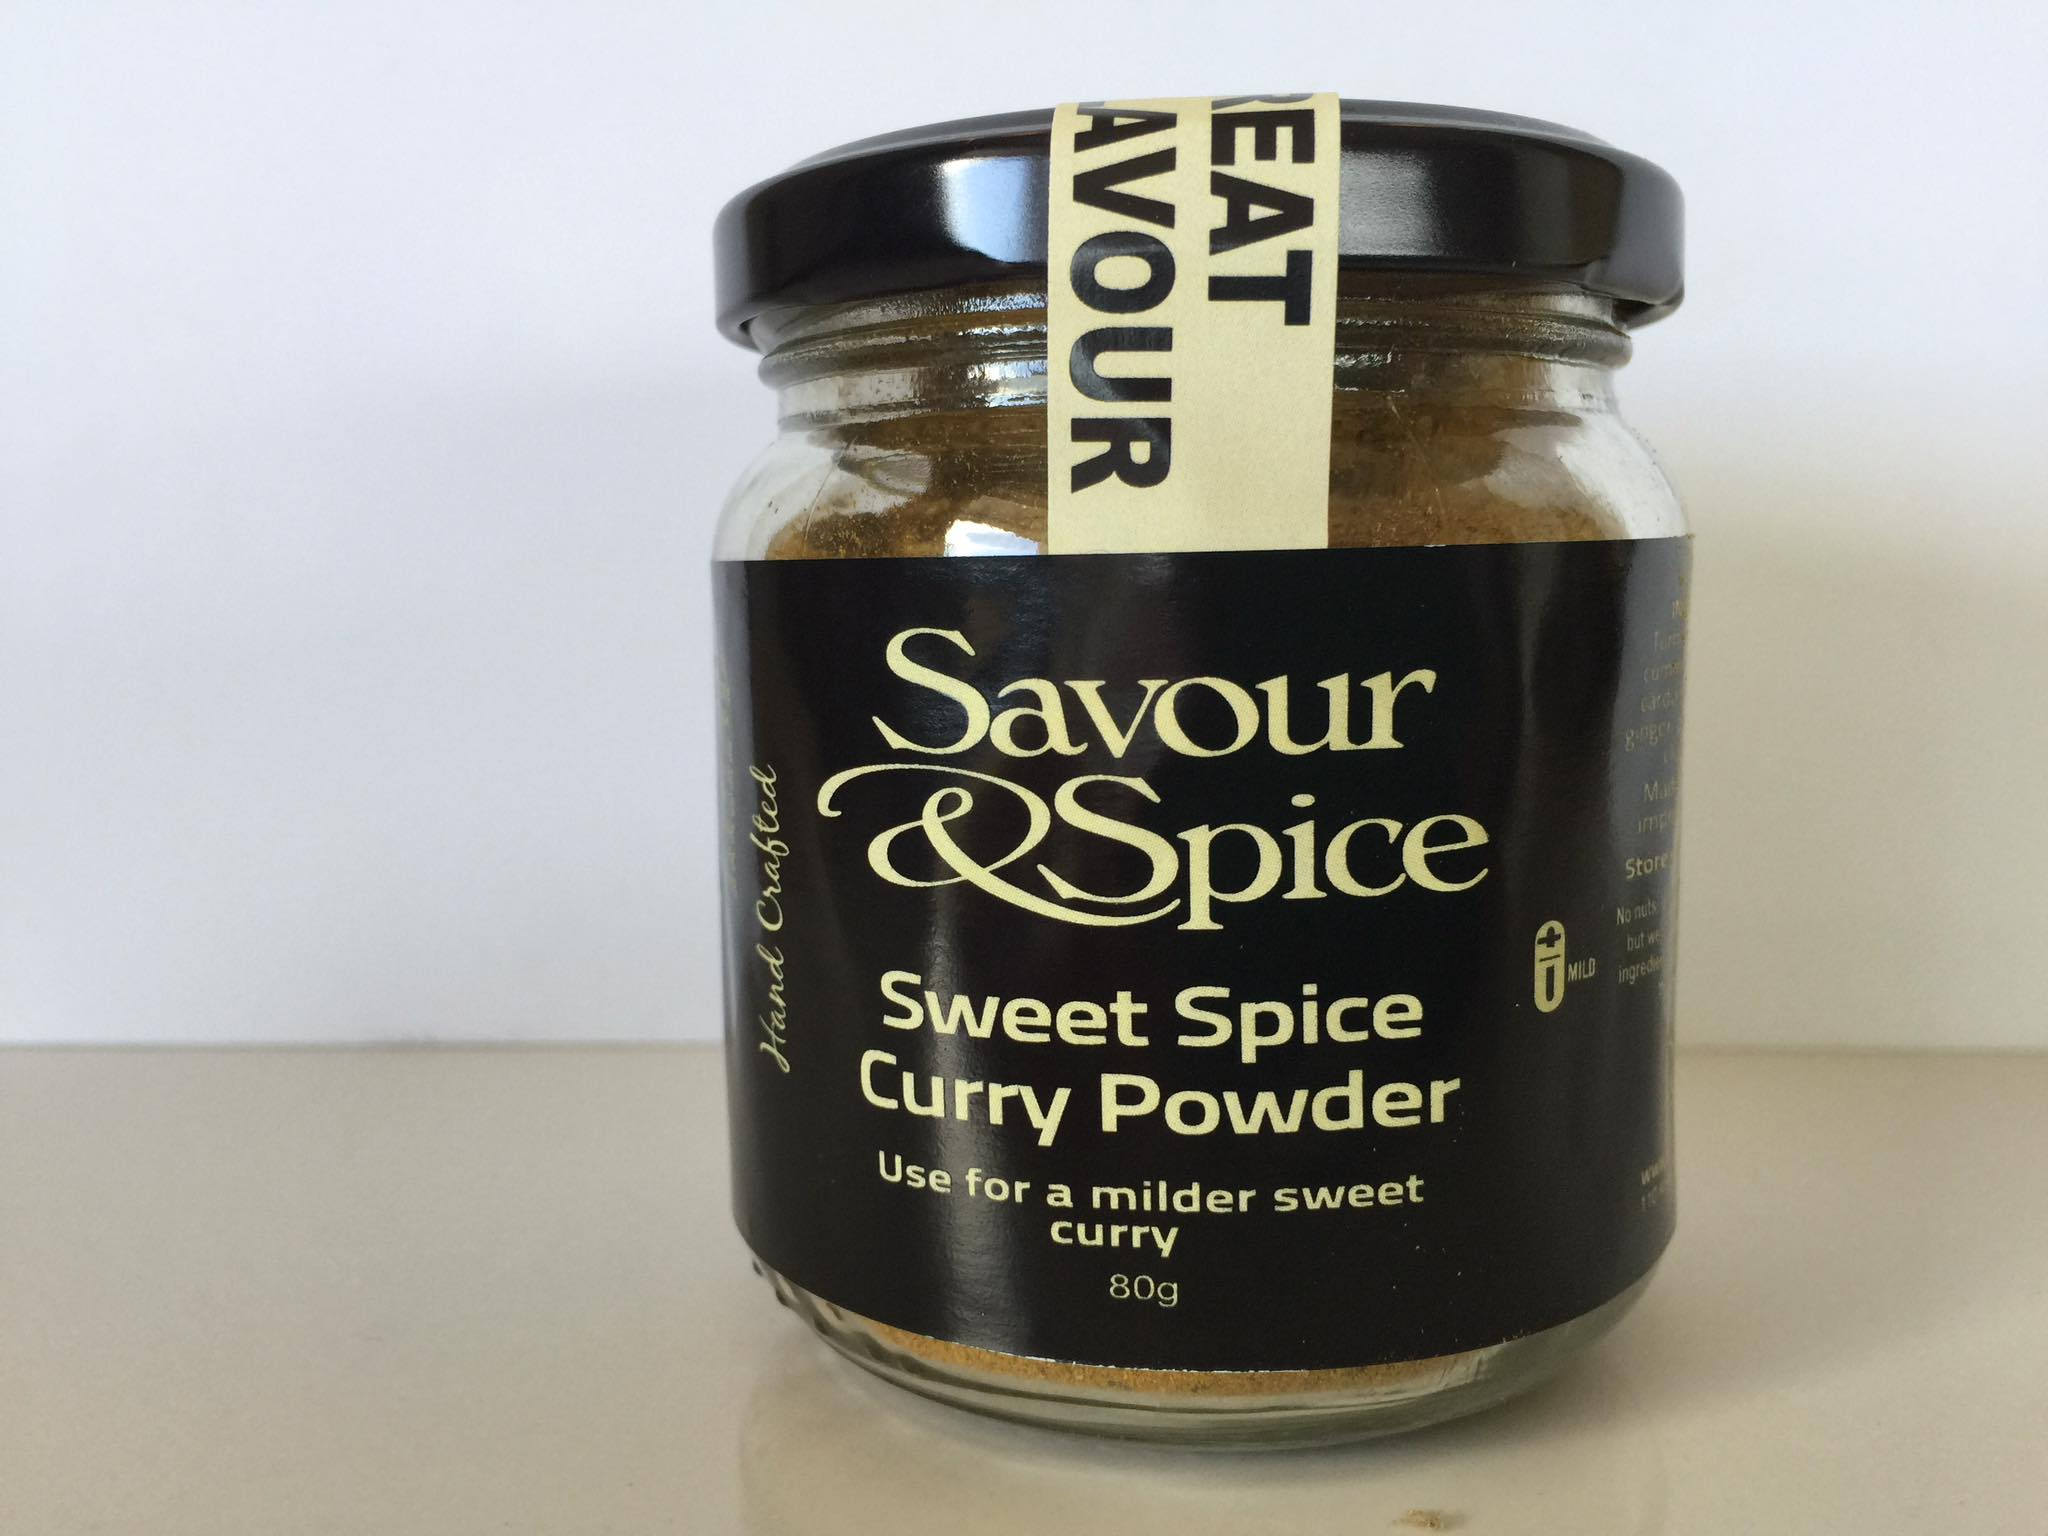 Sweet Spice Curry Powder